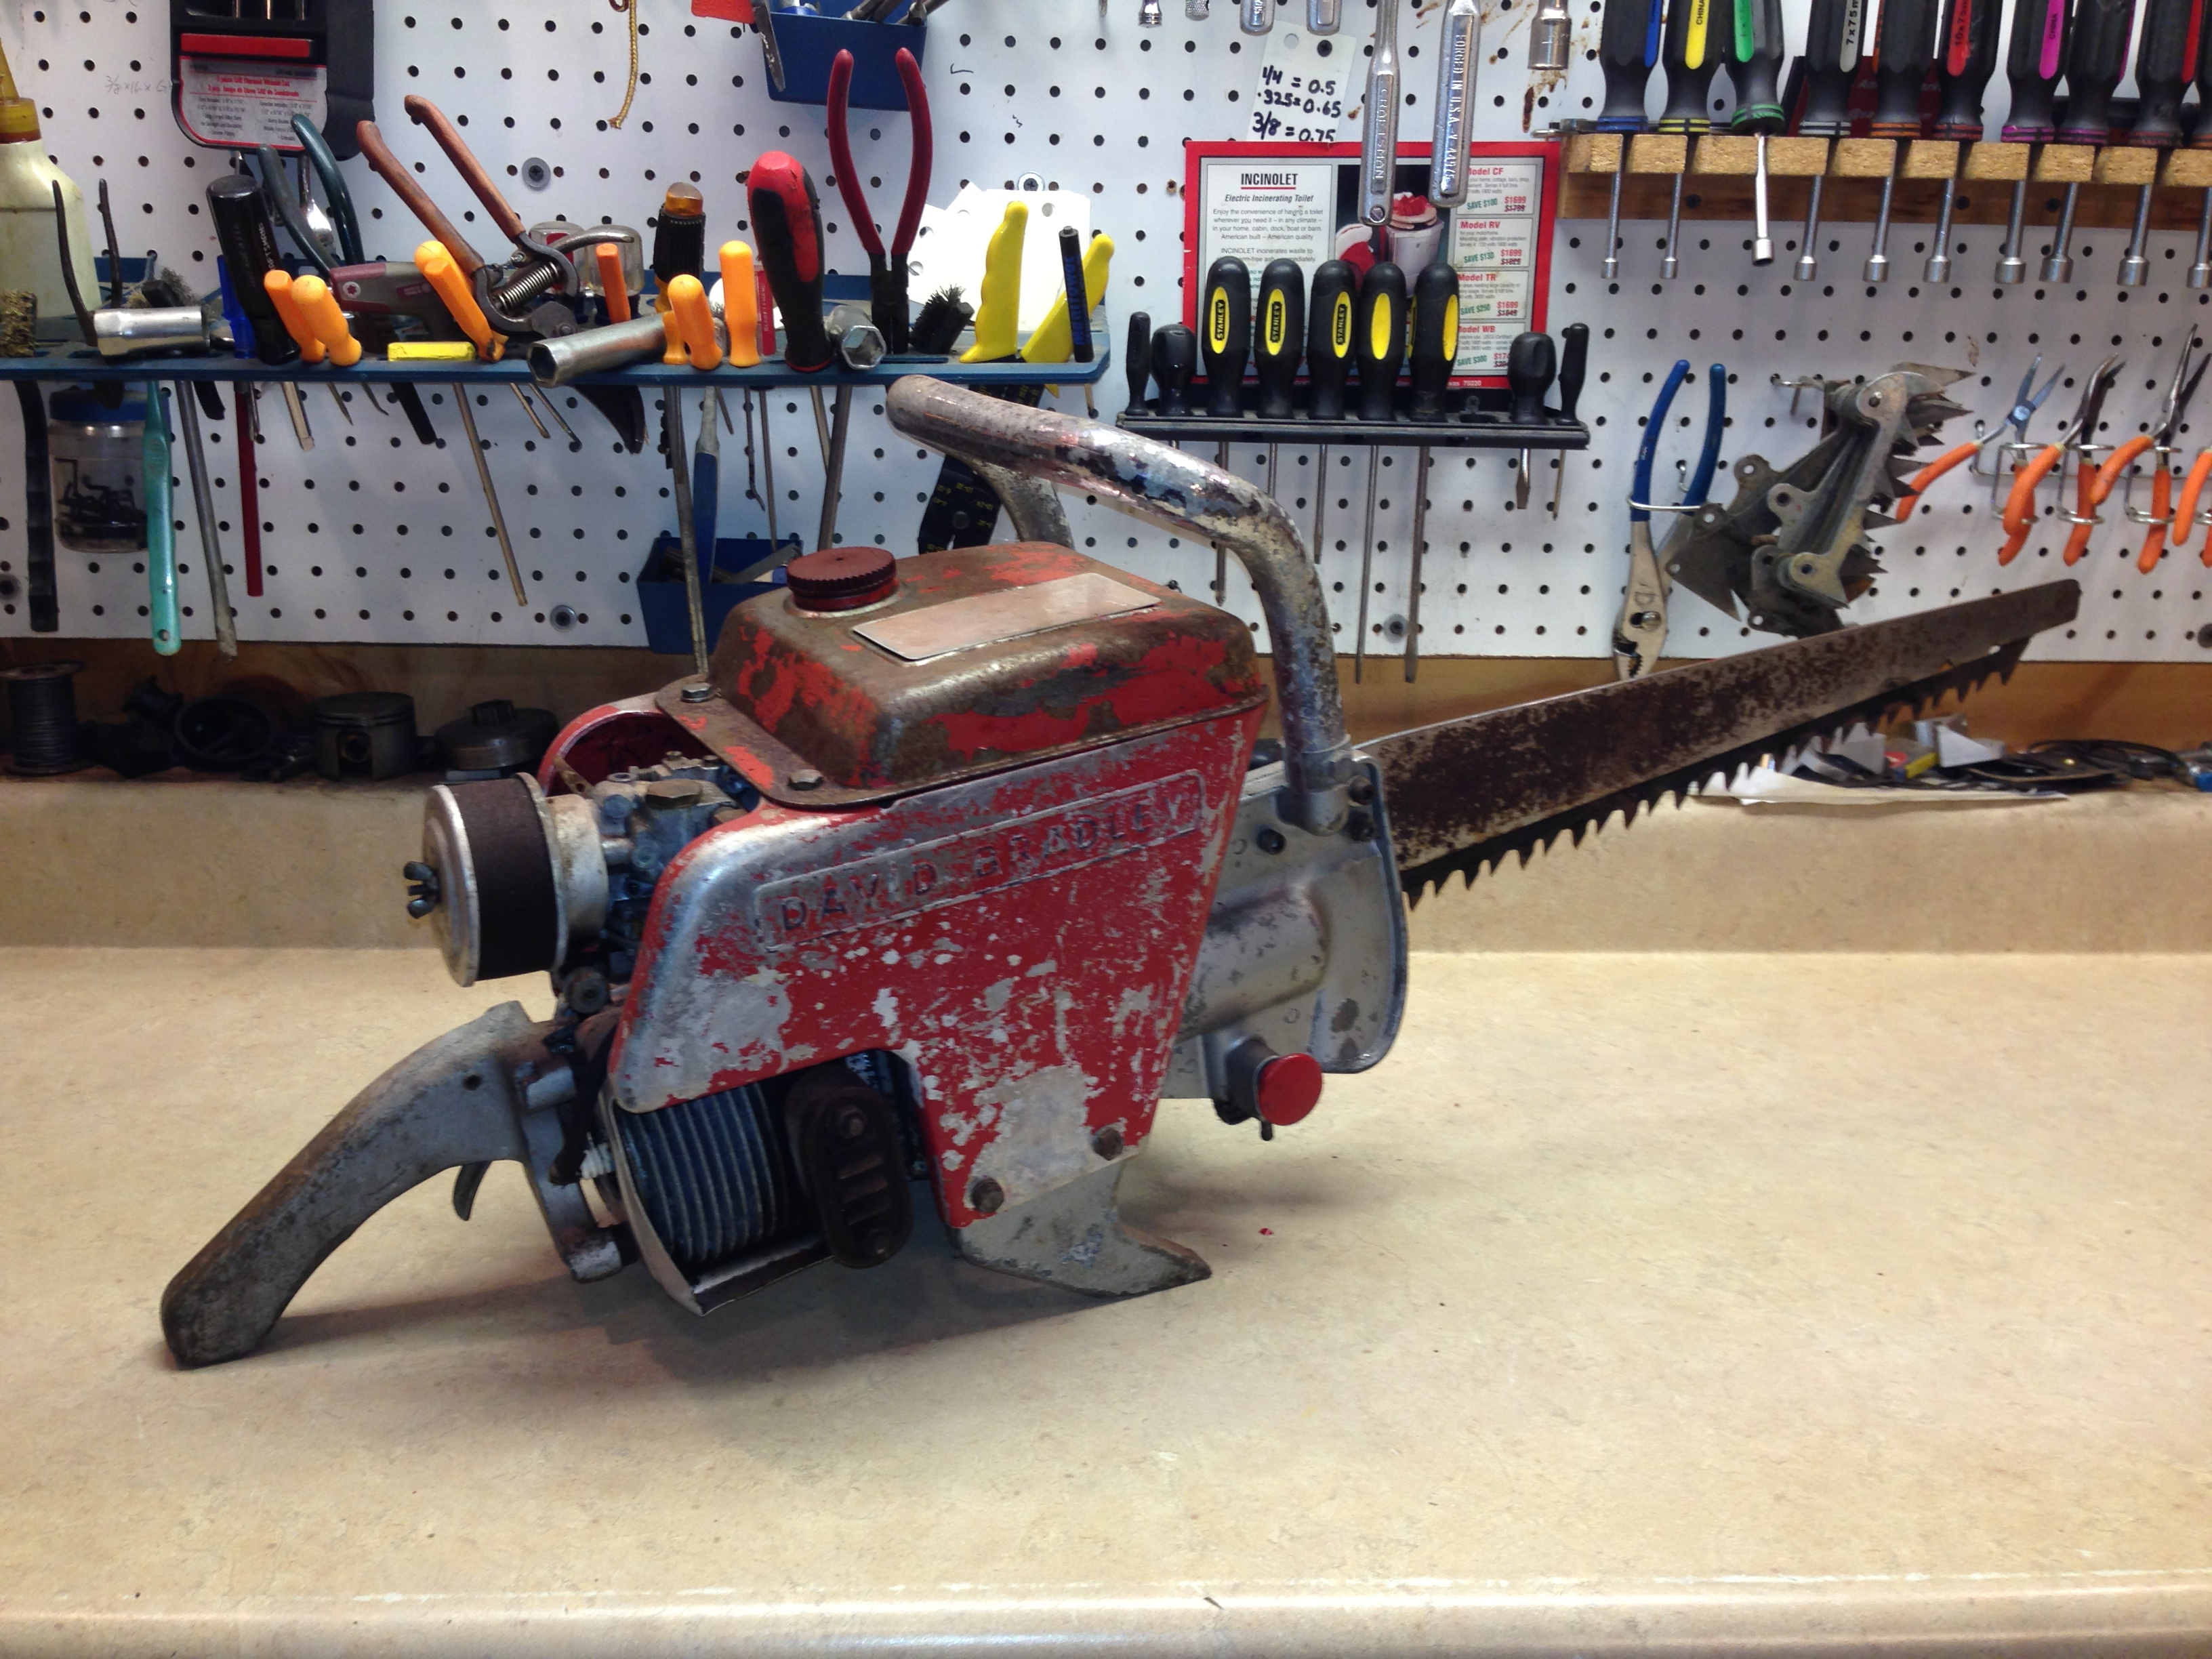 David Bradley reciprocating saw 283.83300  chainsaw (Wright GS-218) #6.JPG